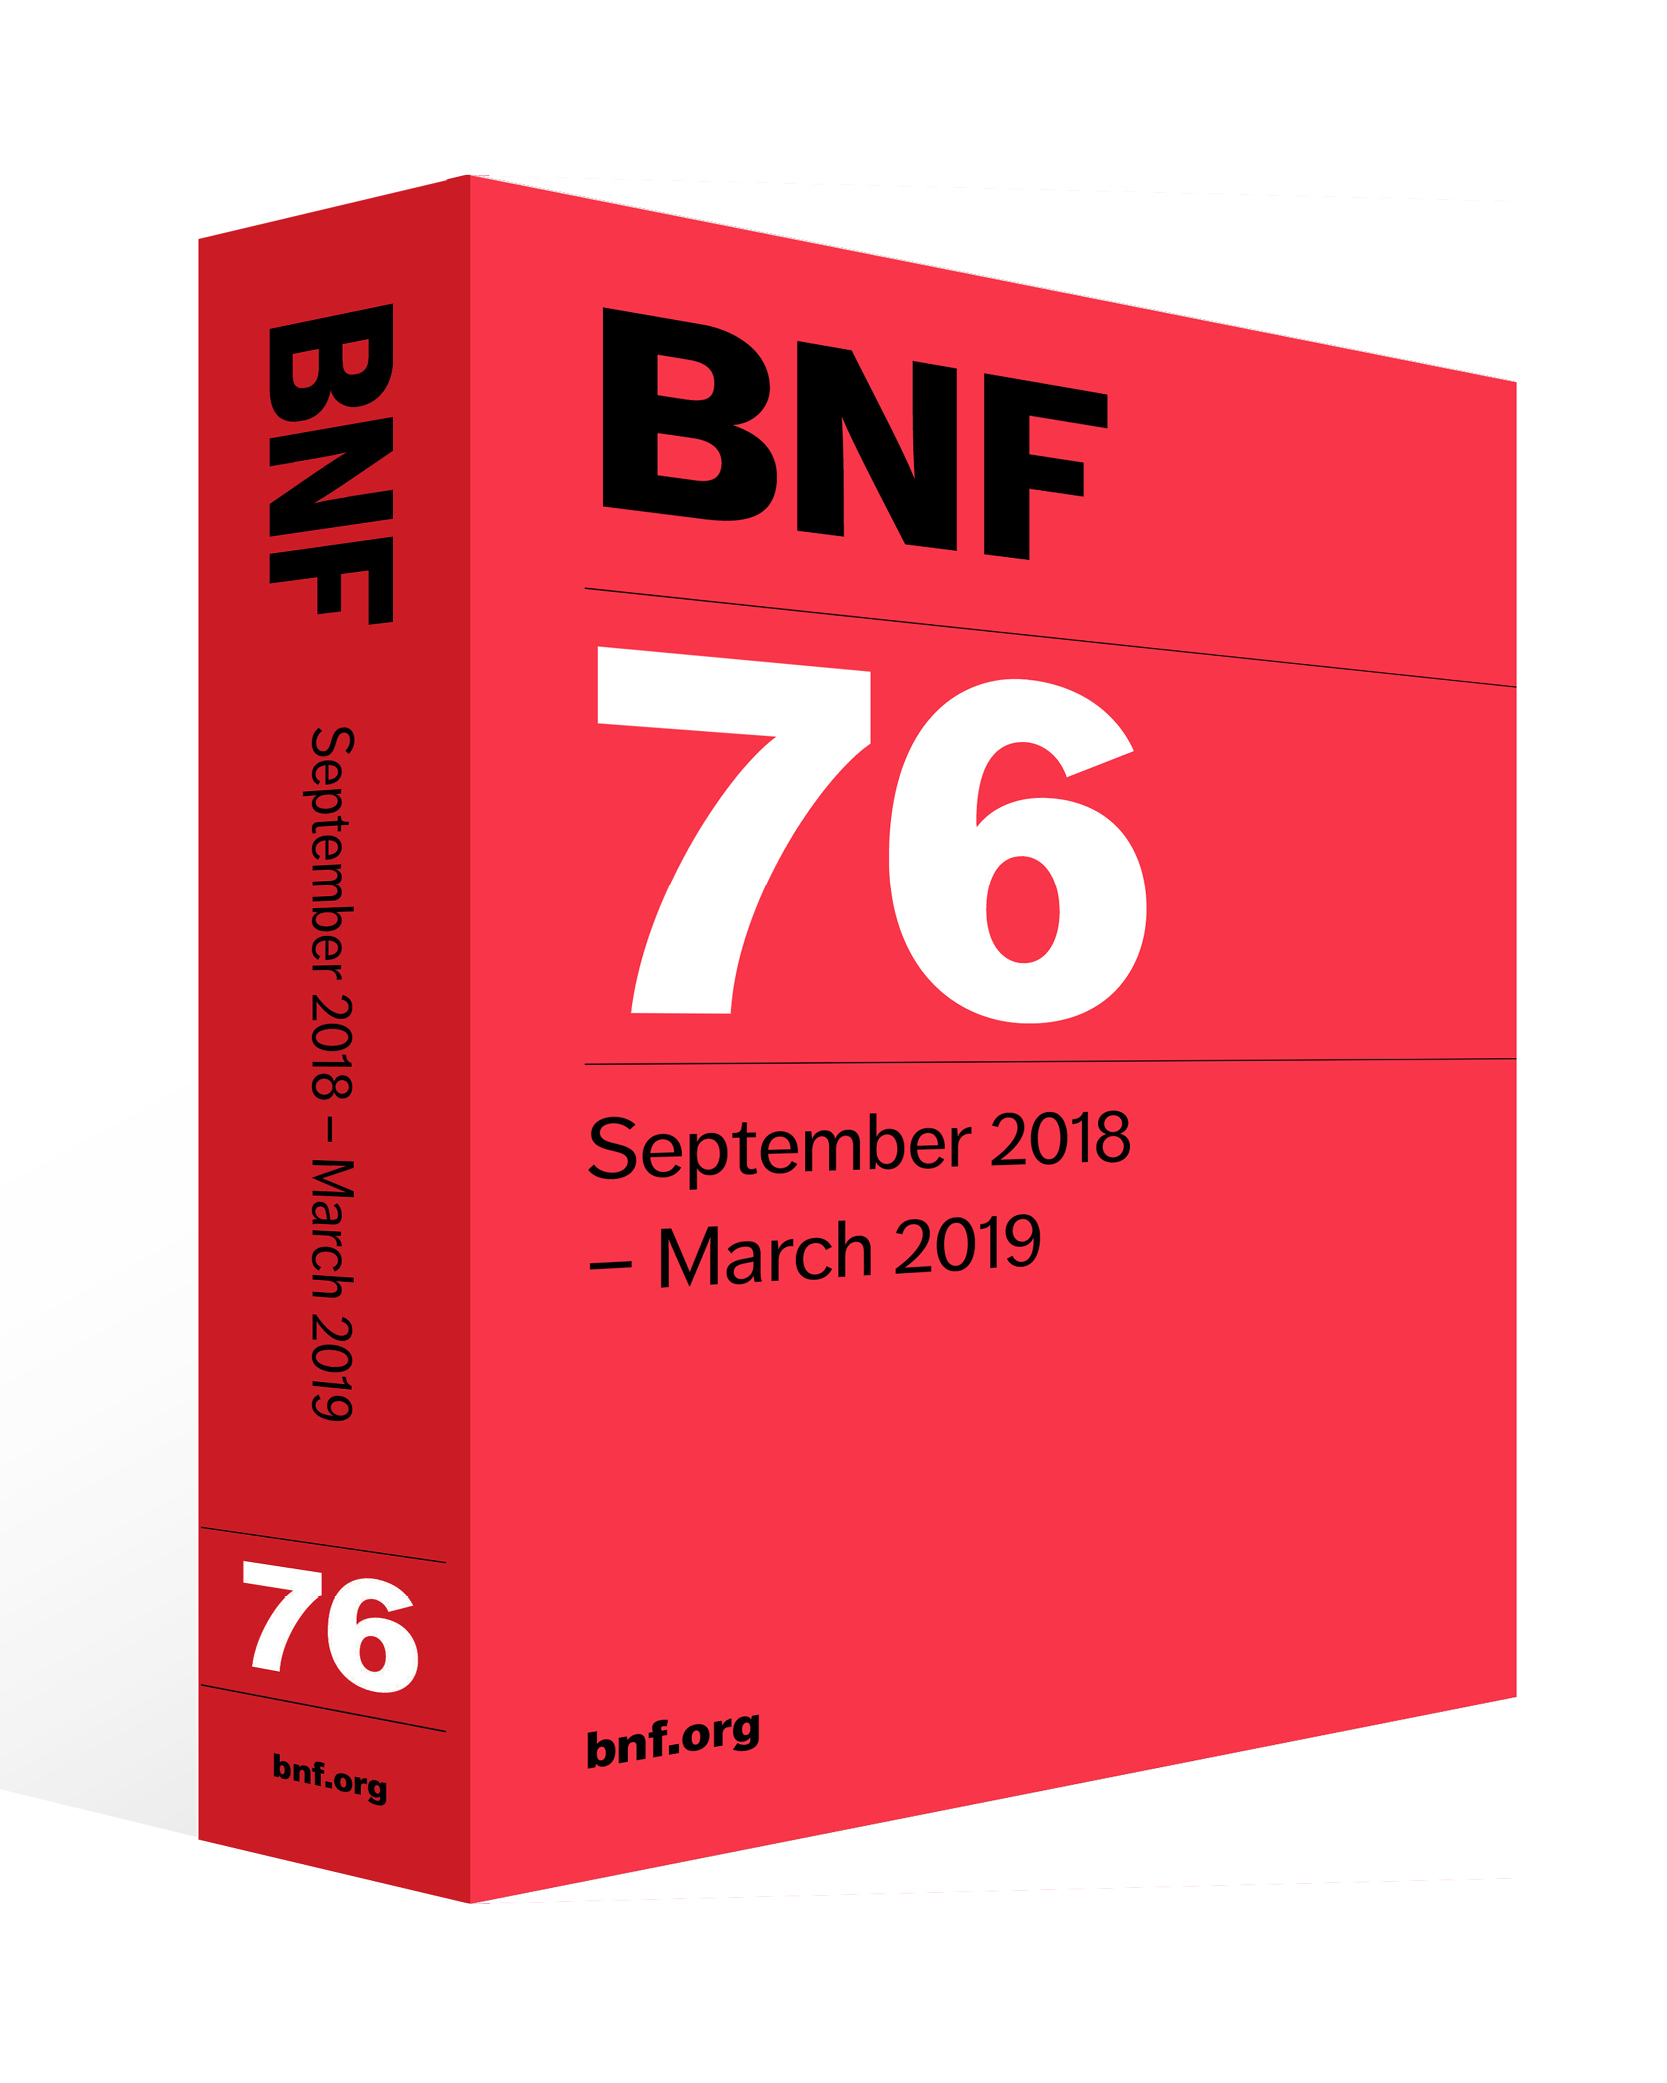 BNF 76 (British National Formulary)